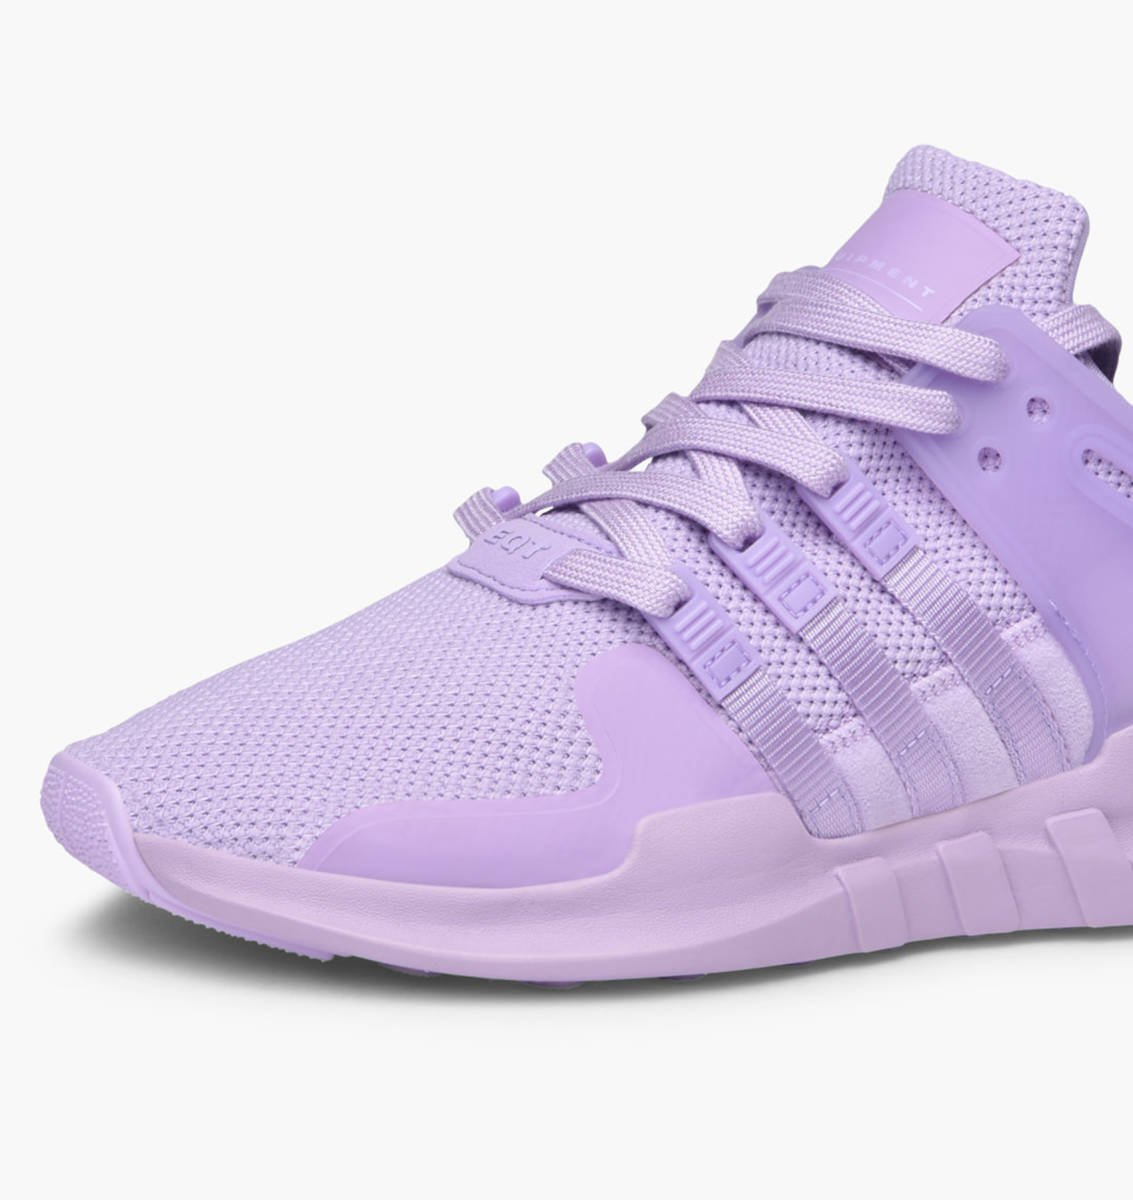 best website 7111a 502ae adidas Originals EQT Support ADV W Glow in lila - BY9109   everysize